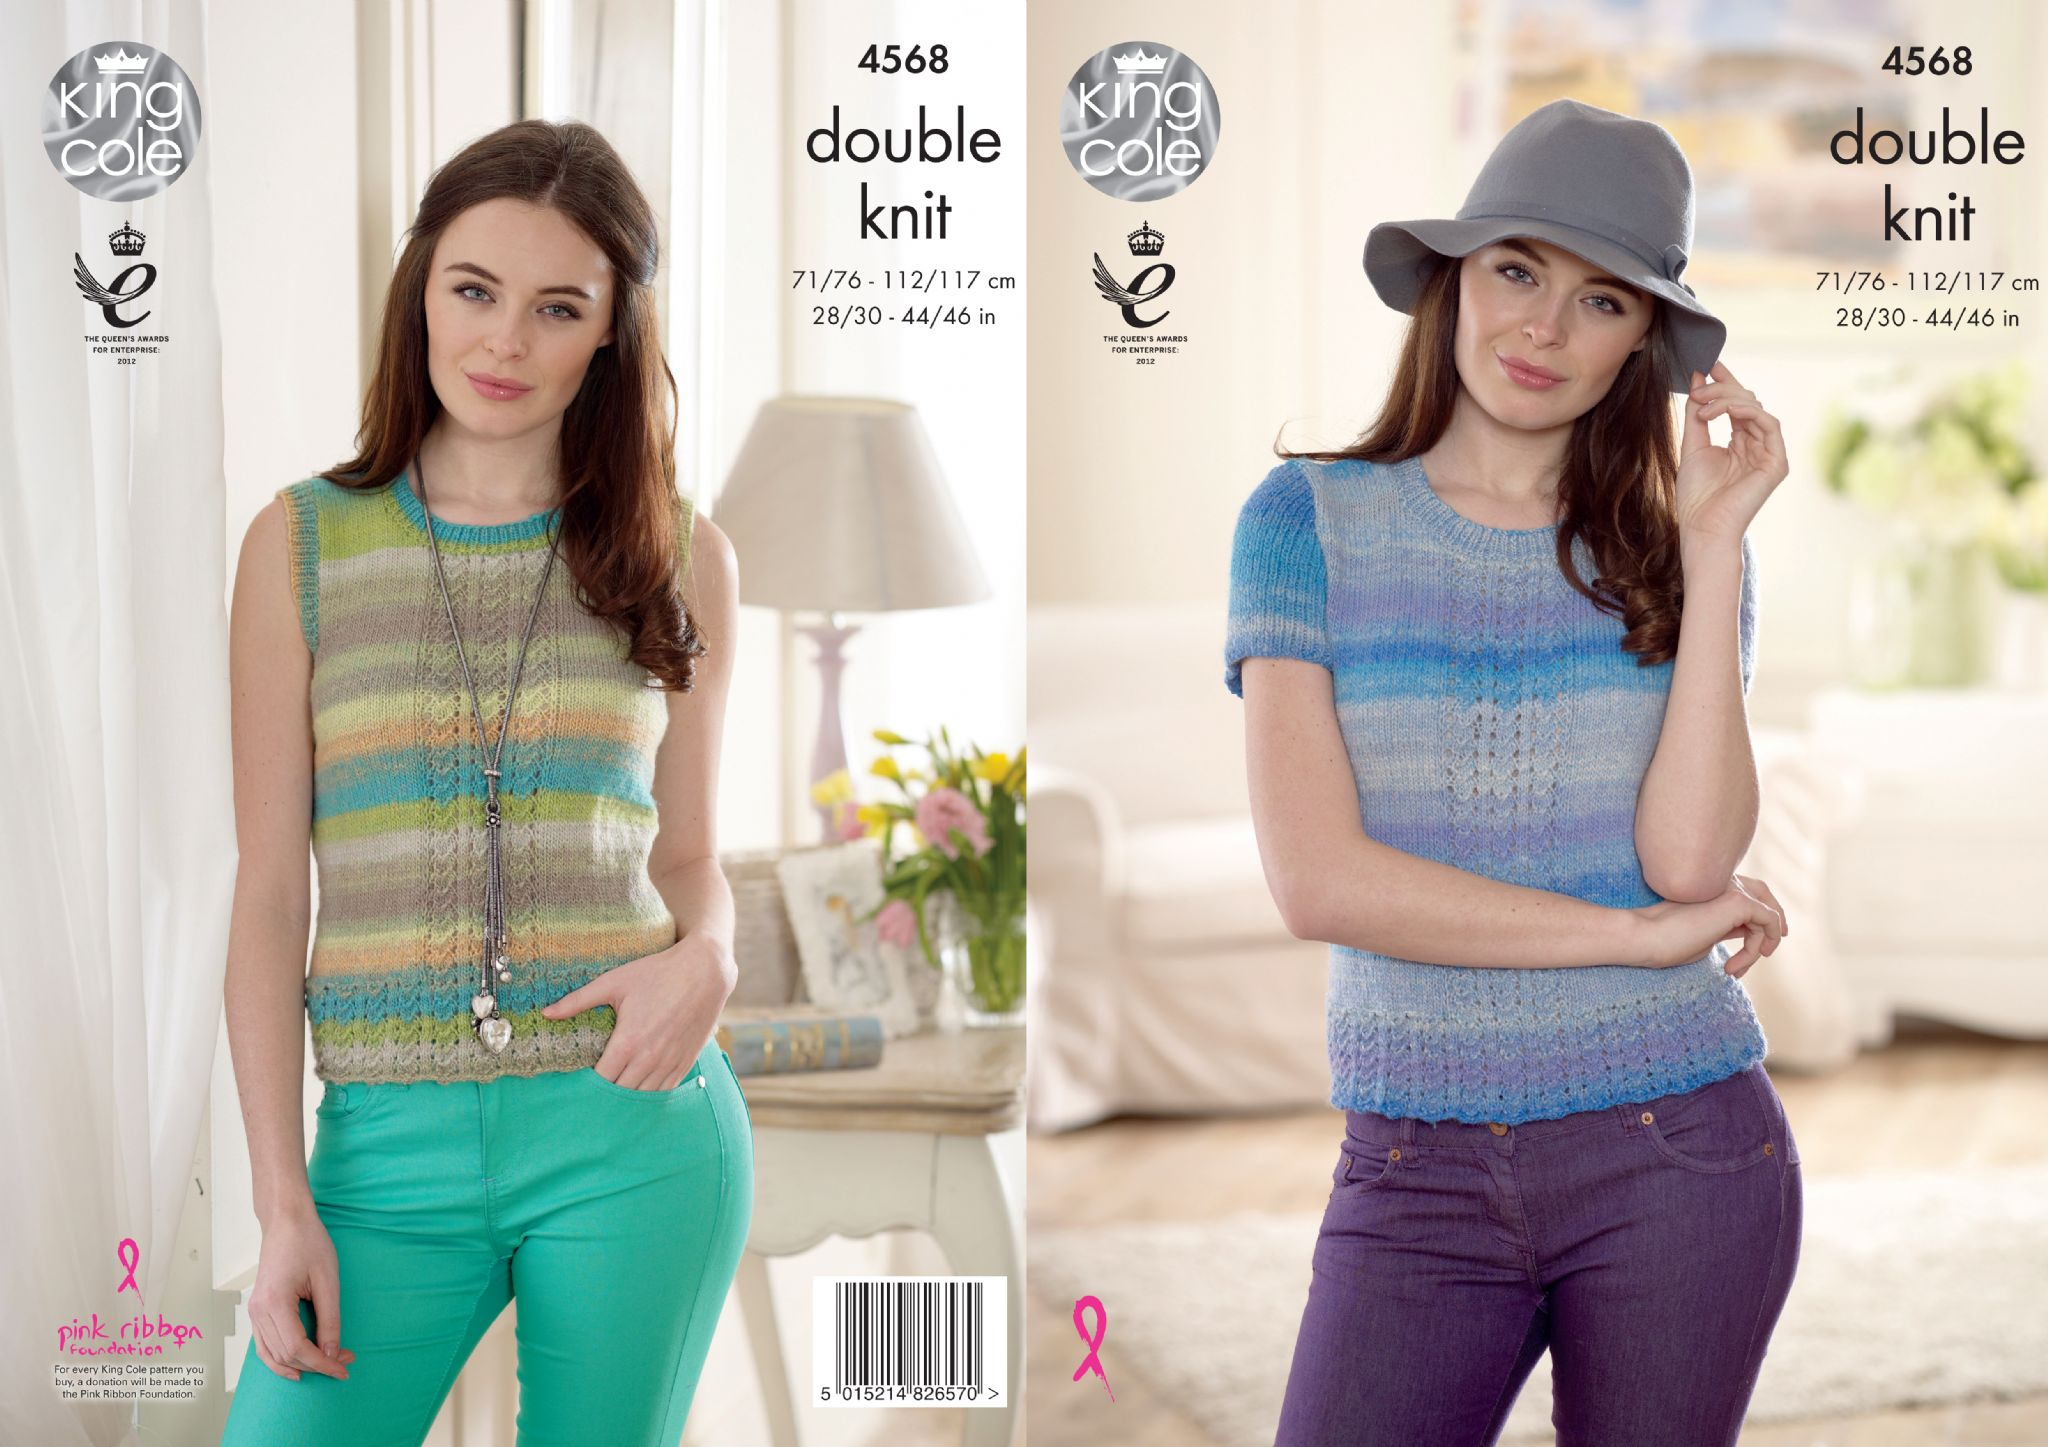 4568 - KING COLE SPRITE DK SLEEVELESS TOP & SHORT SLEEVED SWEATER ...